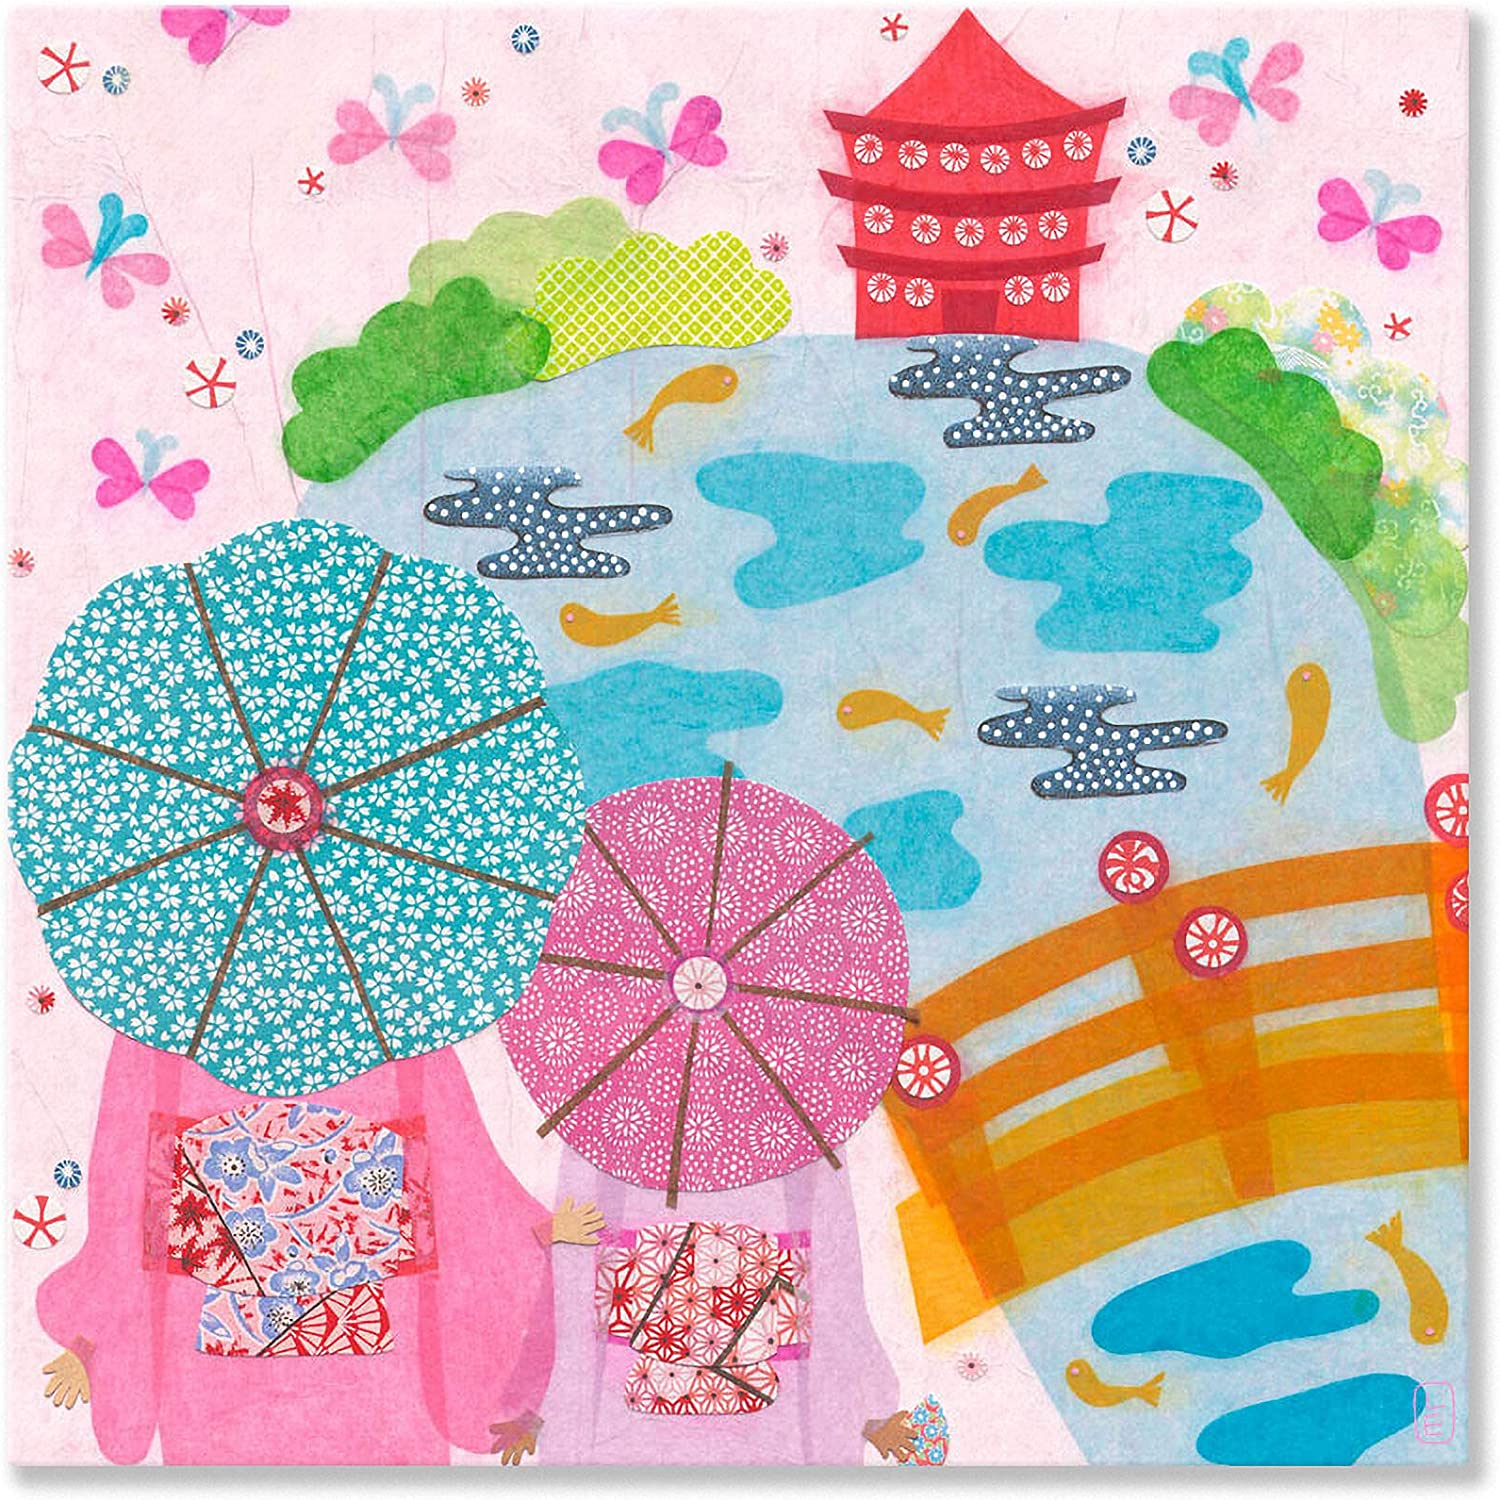 Oopsy Daisy Japanese Garden Girls Canvas Wall Art, 14x14, Pink